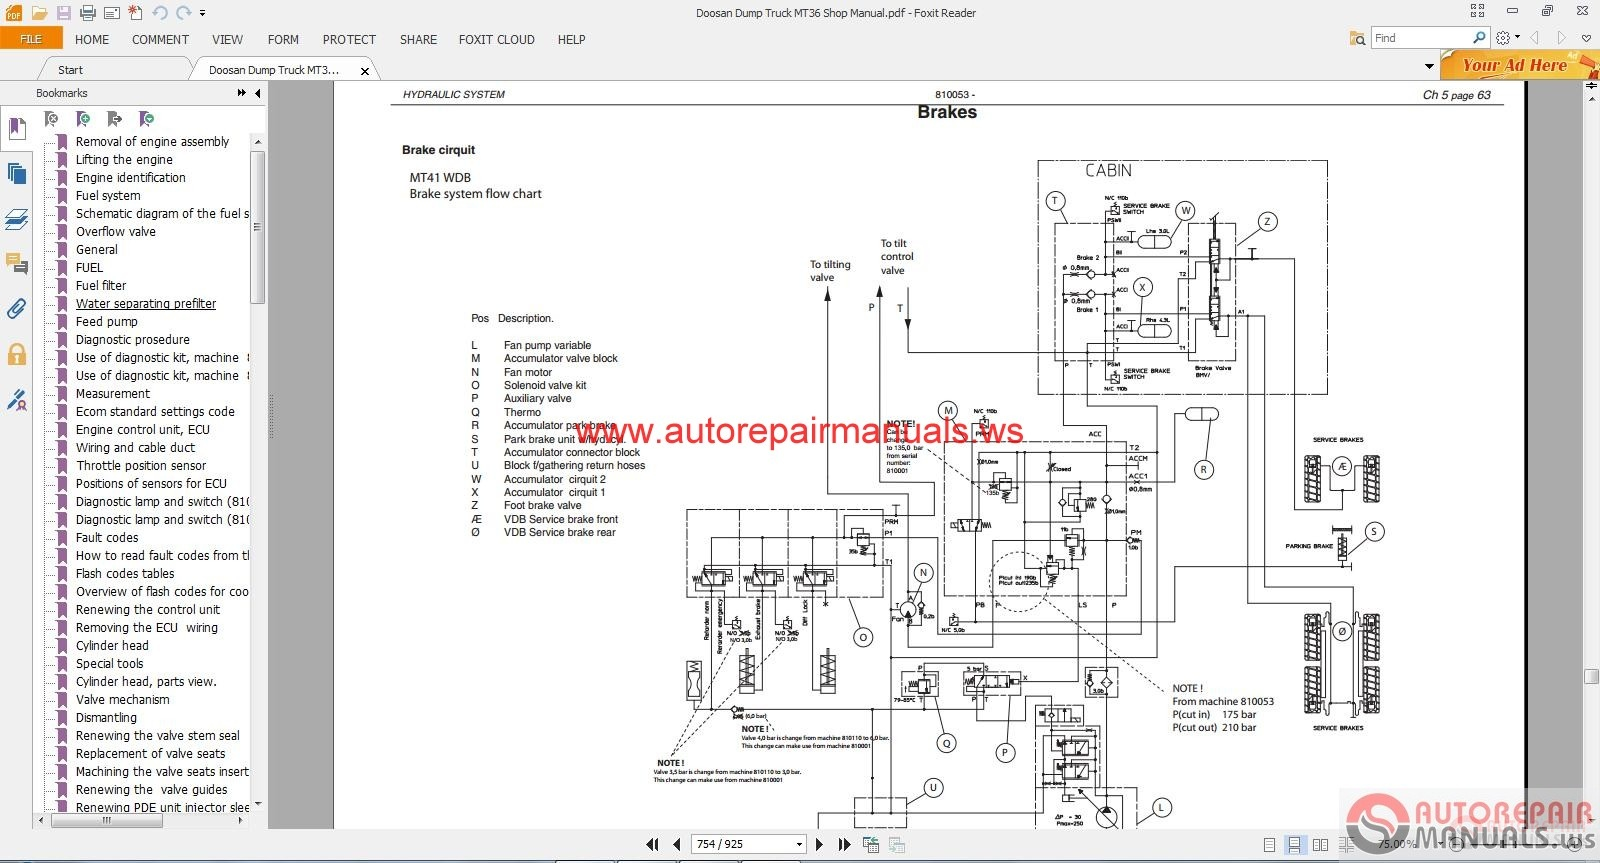 1966 Chevy Impala Wiring Harness Search For Diagrams Daewoo Forklift Diagram Auto 1969 1964